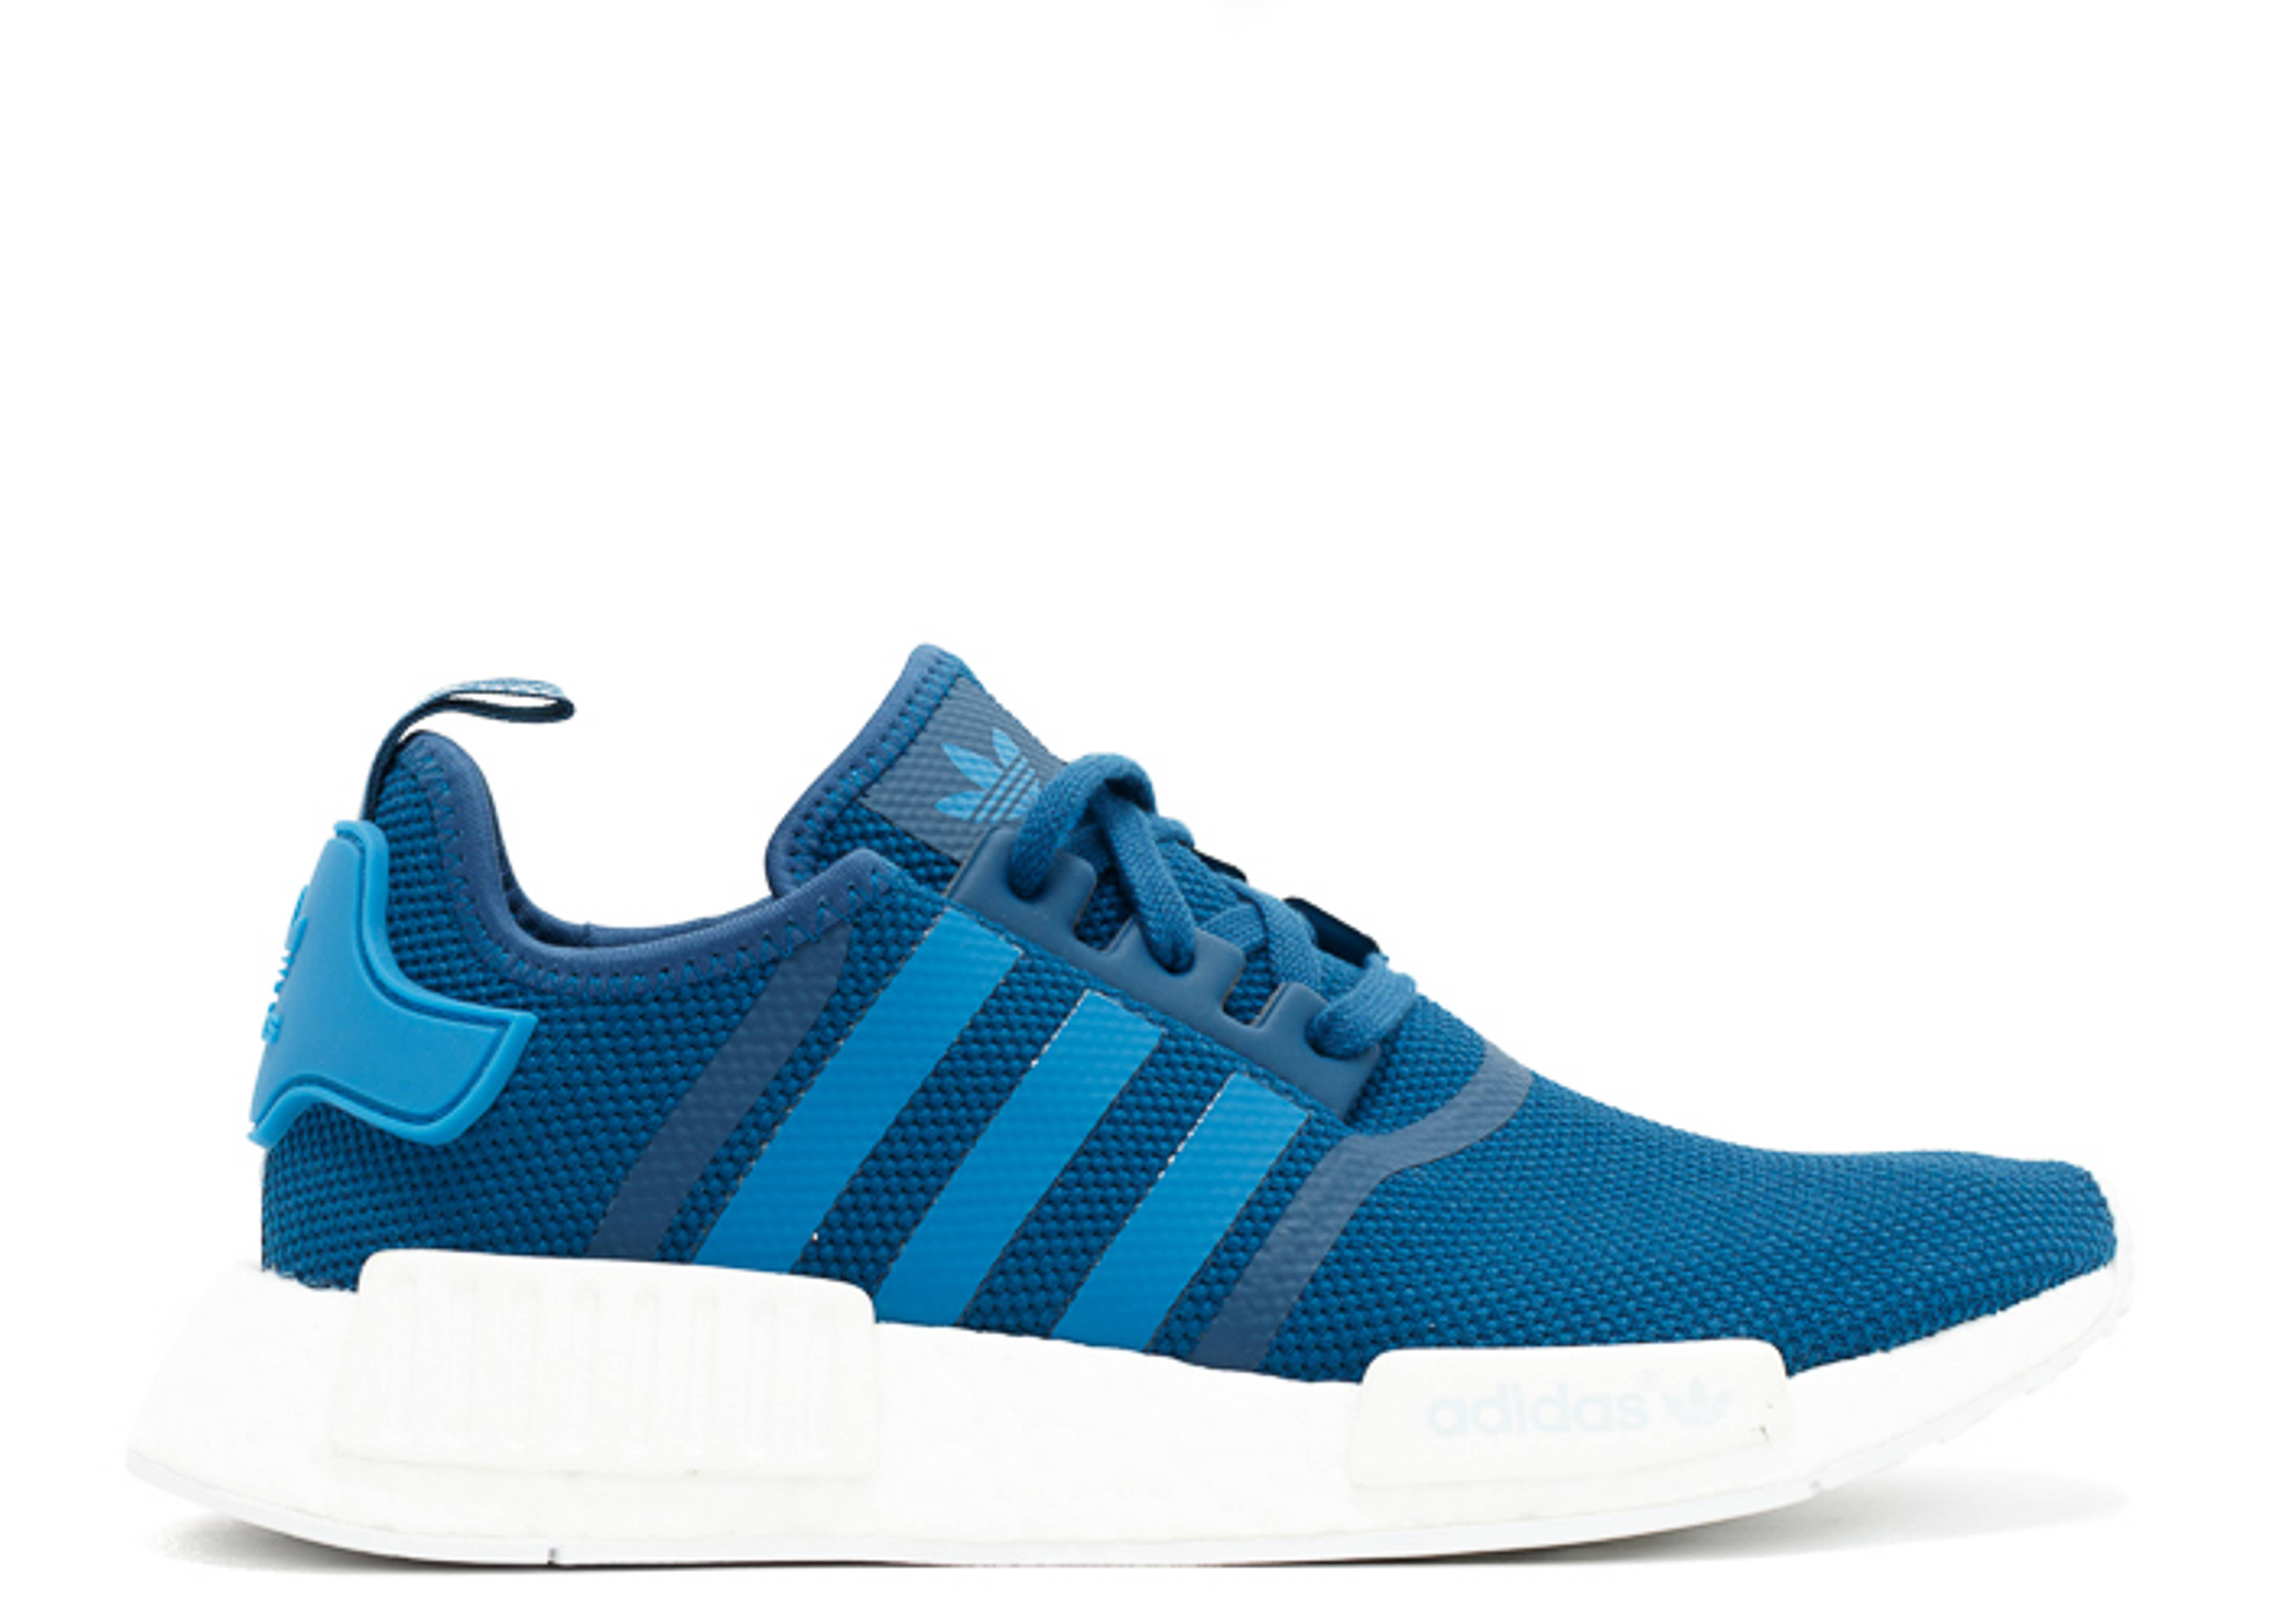 wholesale dealer f6be6 506f1 NMD_R1 'Unity Blue'